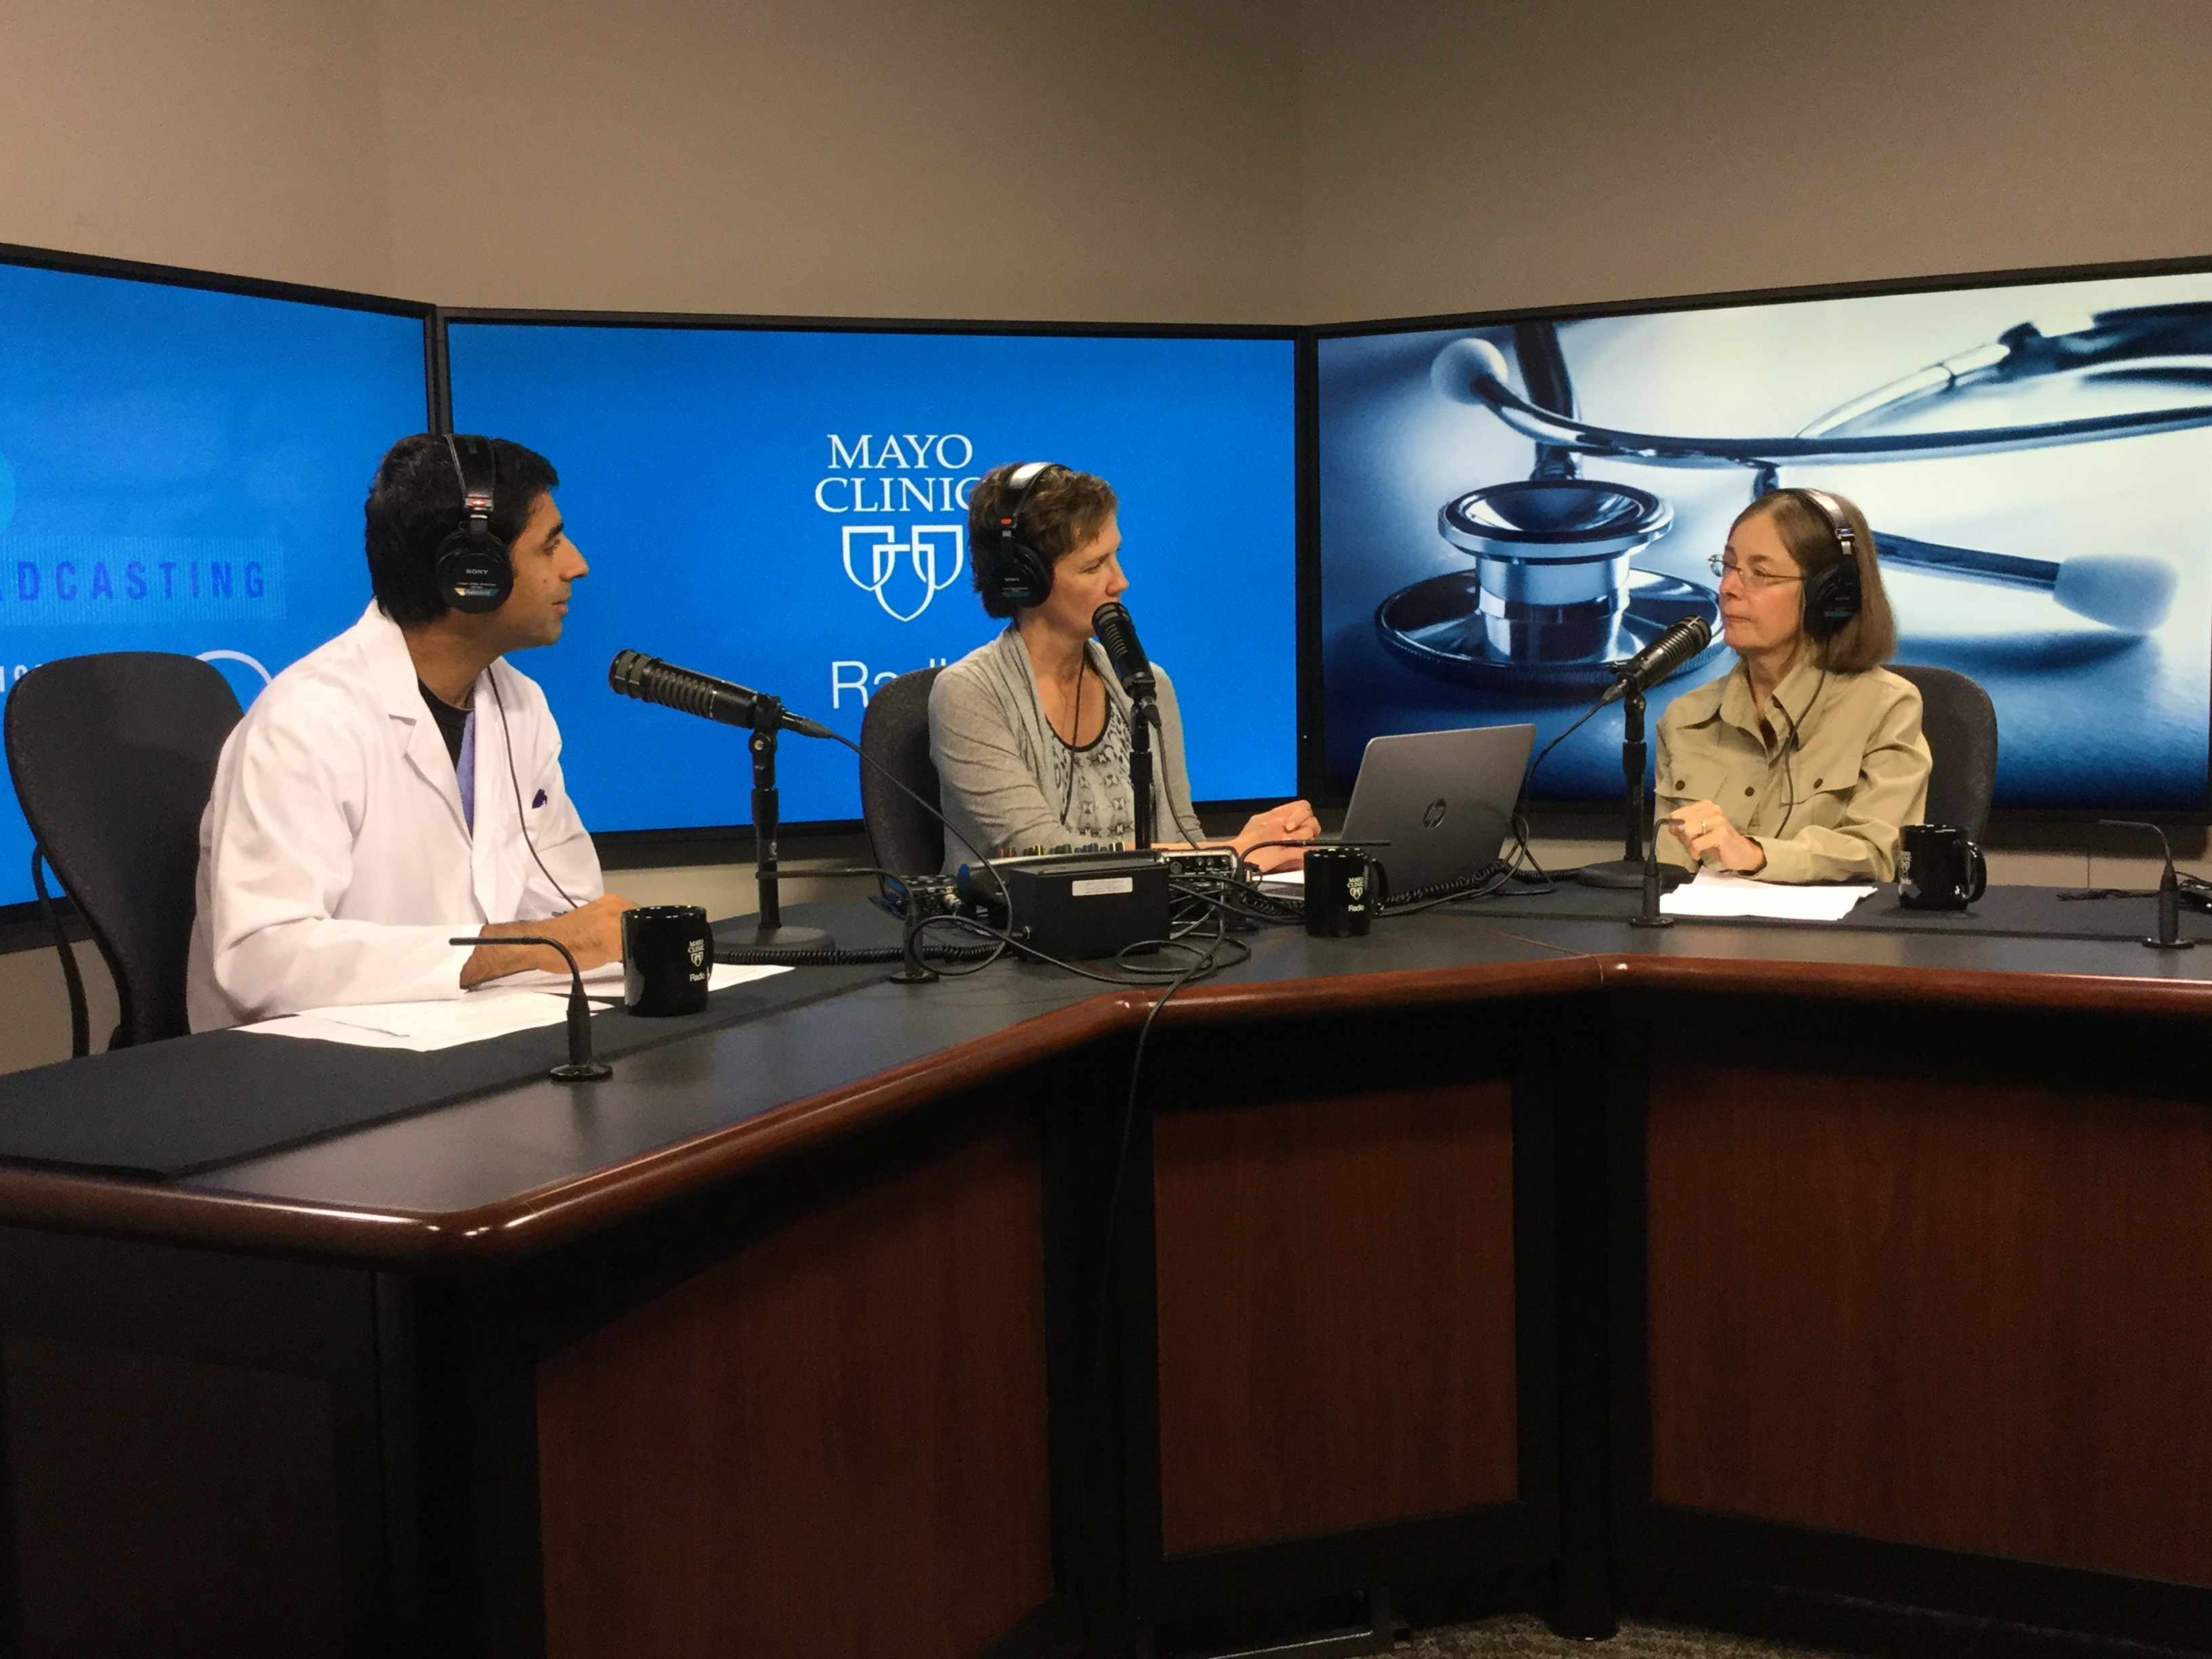 Dr. Carola Arndt being interviewed on Mayo Clinic Radio